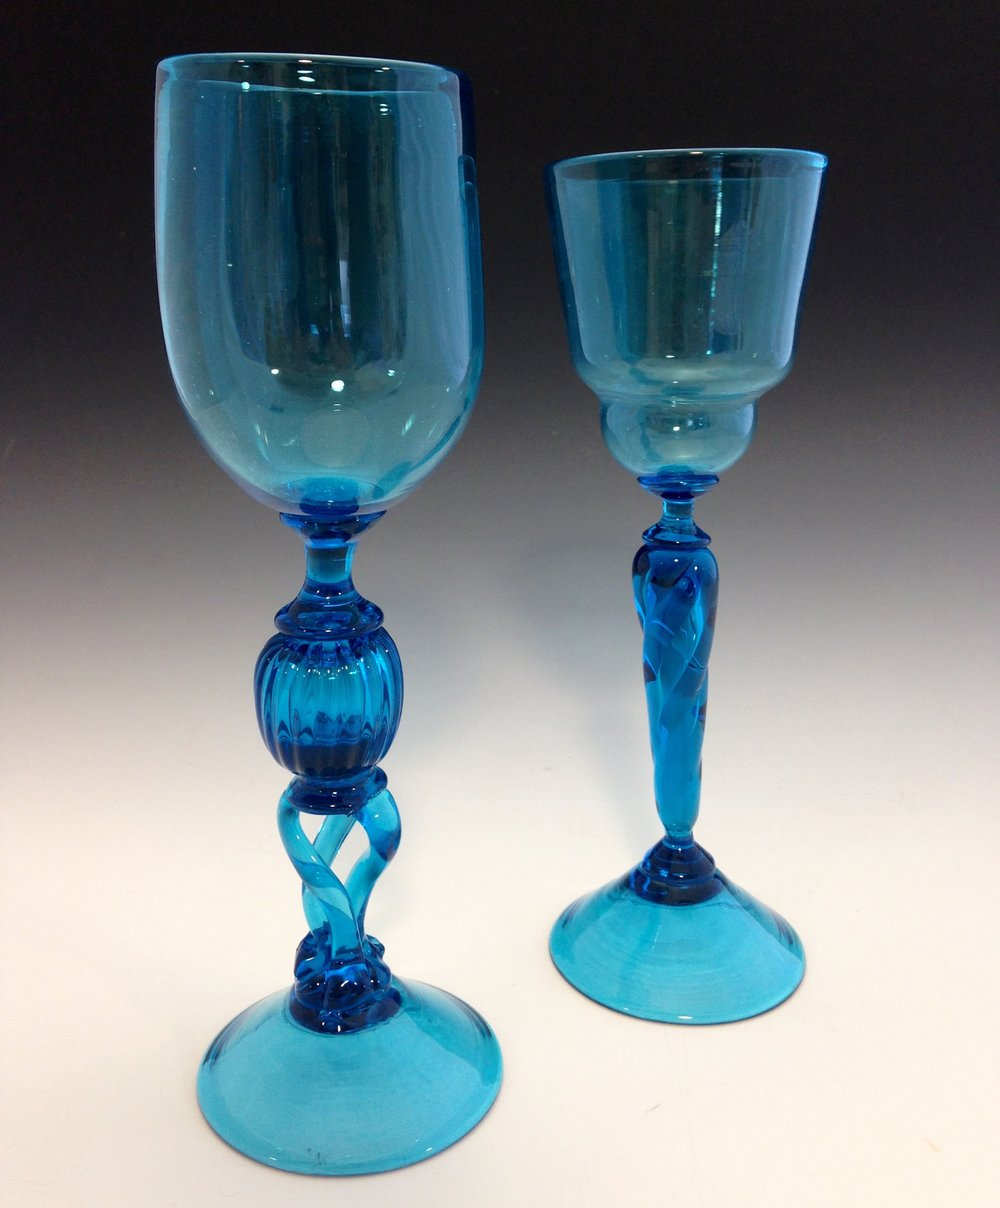 Cobalt Goblets (glass - 3'' x 3'' x 9'') – Alex Evenchik